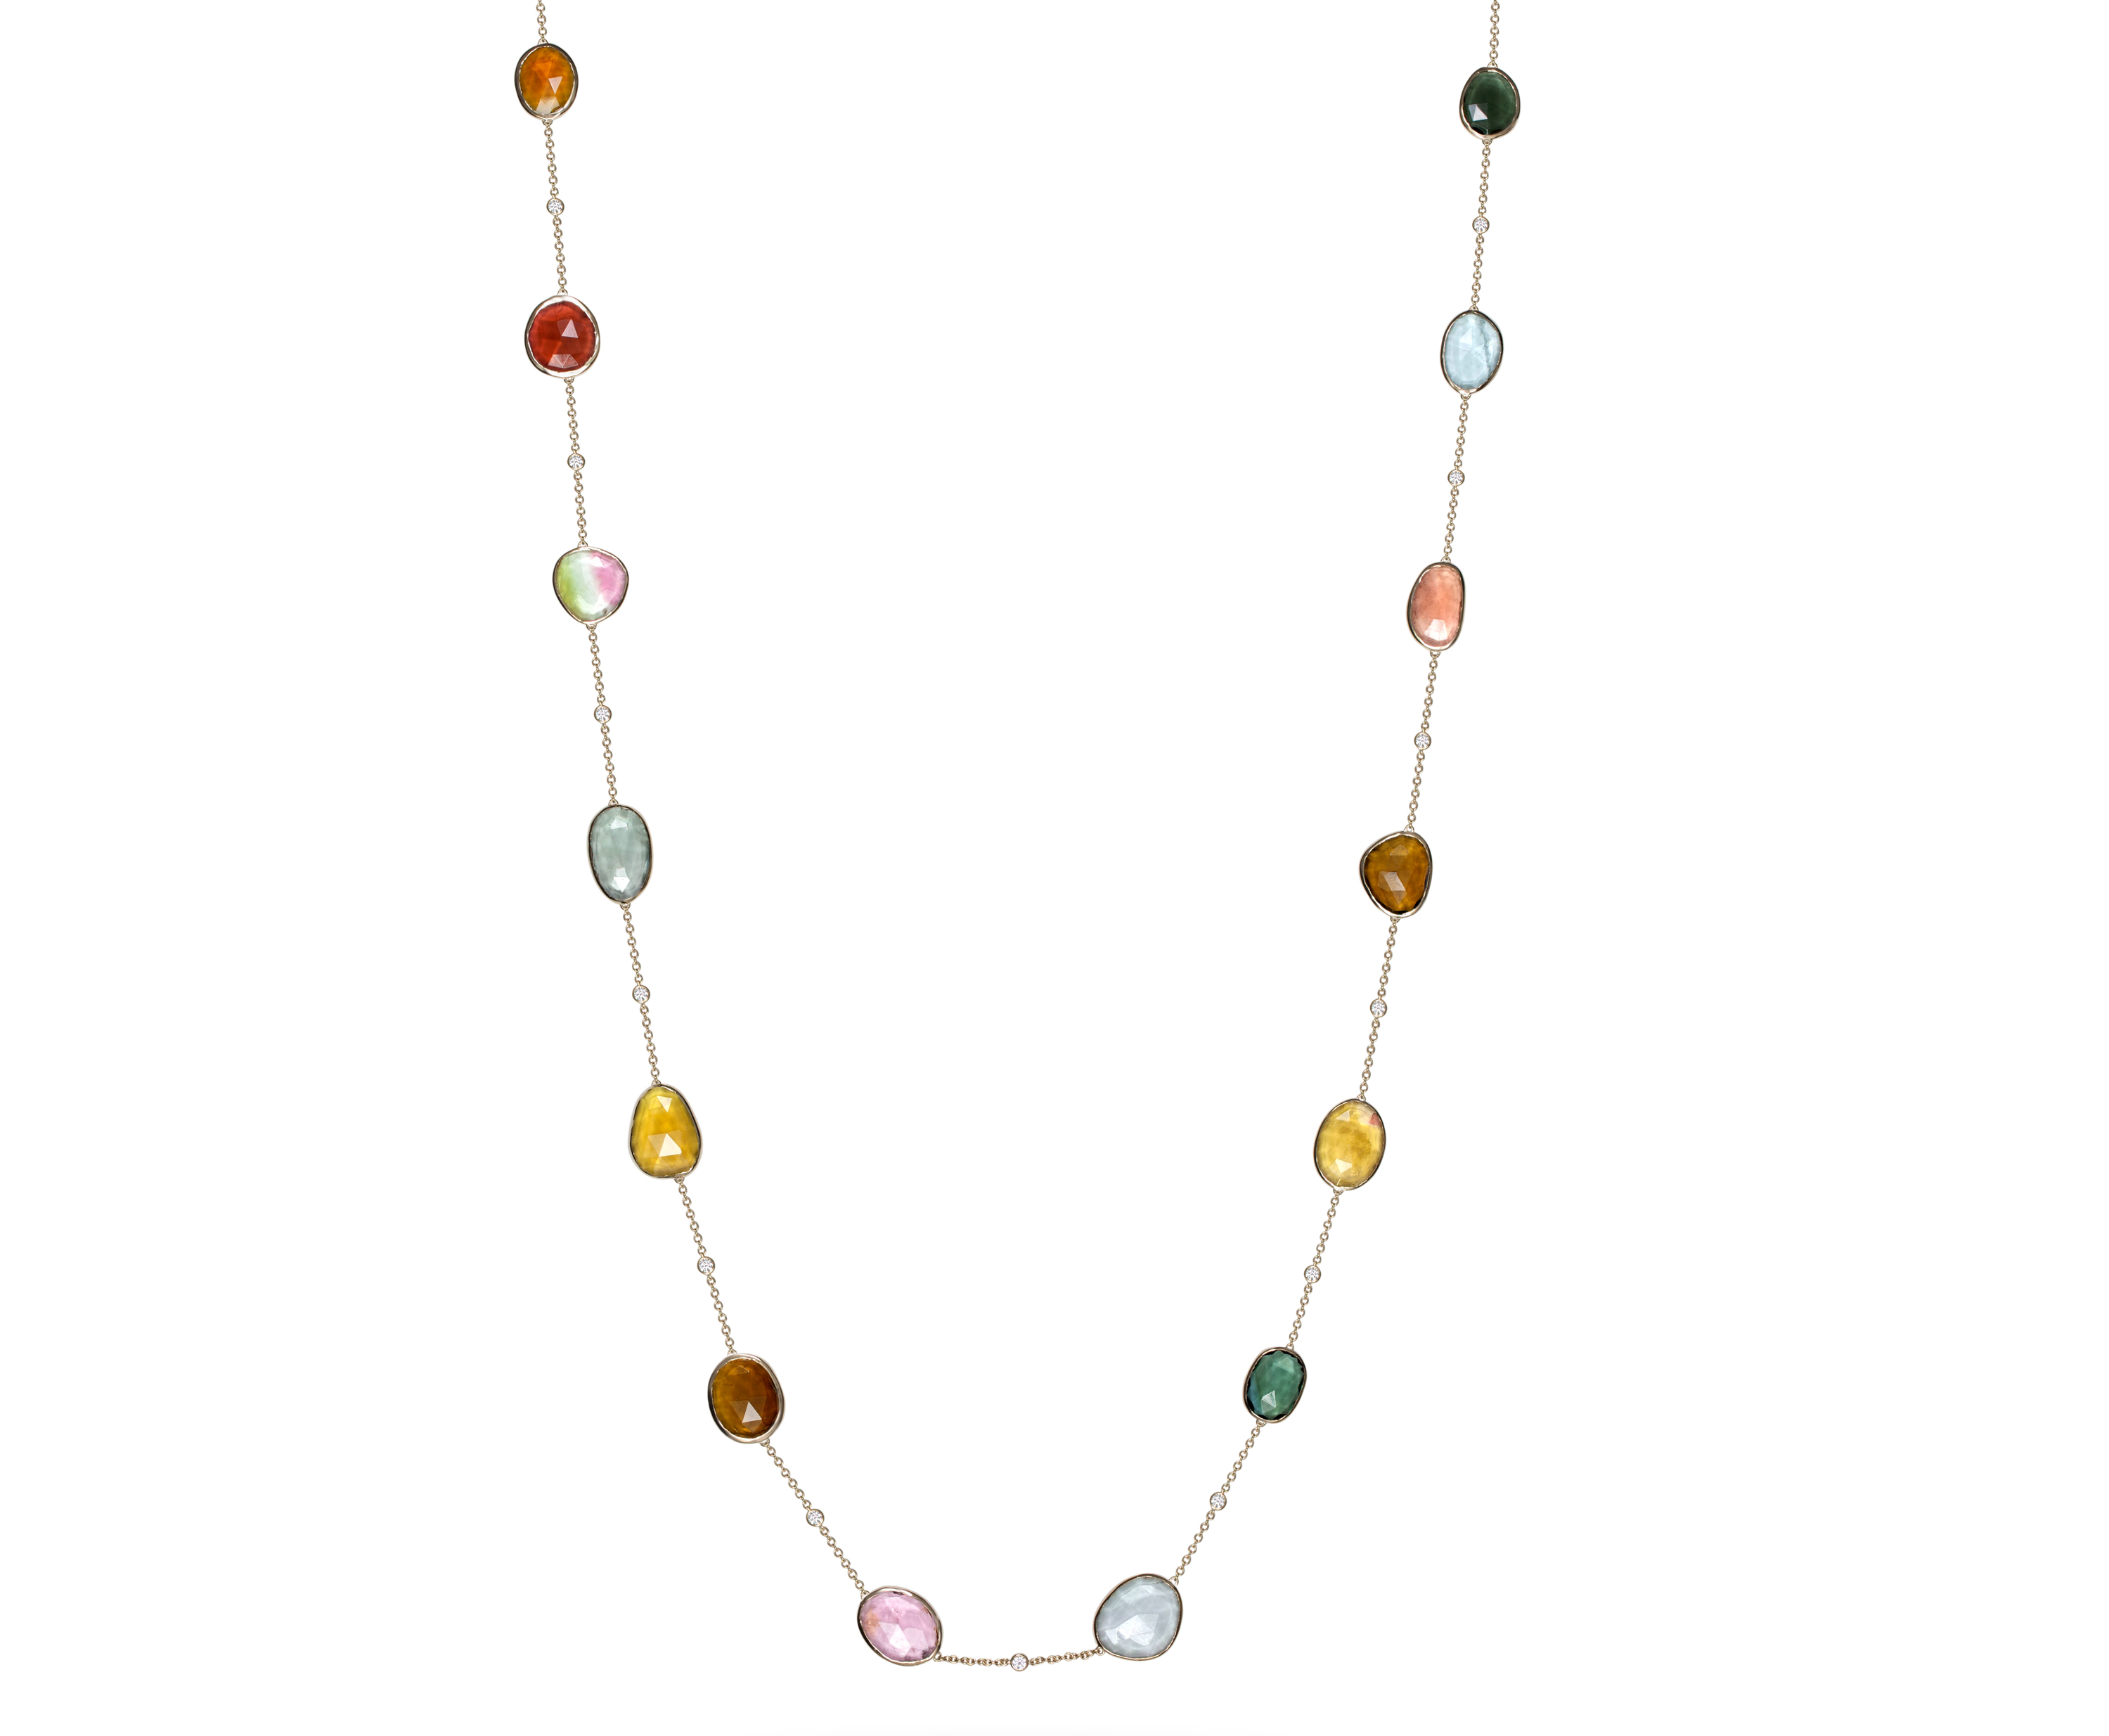 VTse multicolor gemstone necklace | JCK On Your Market